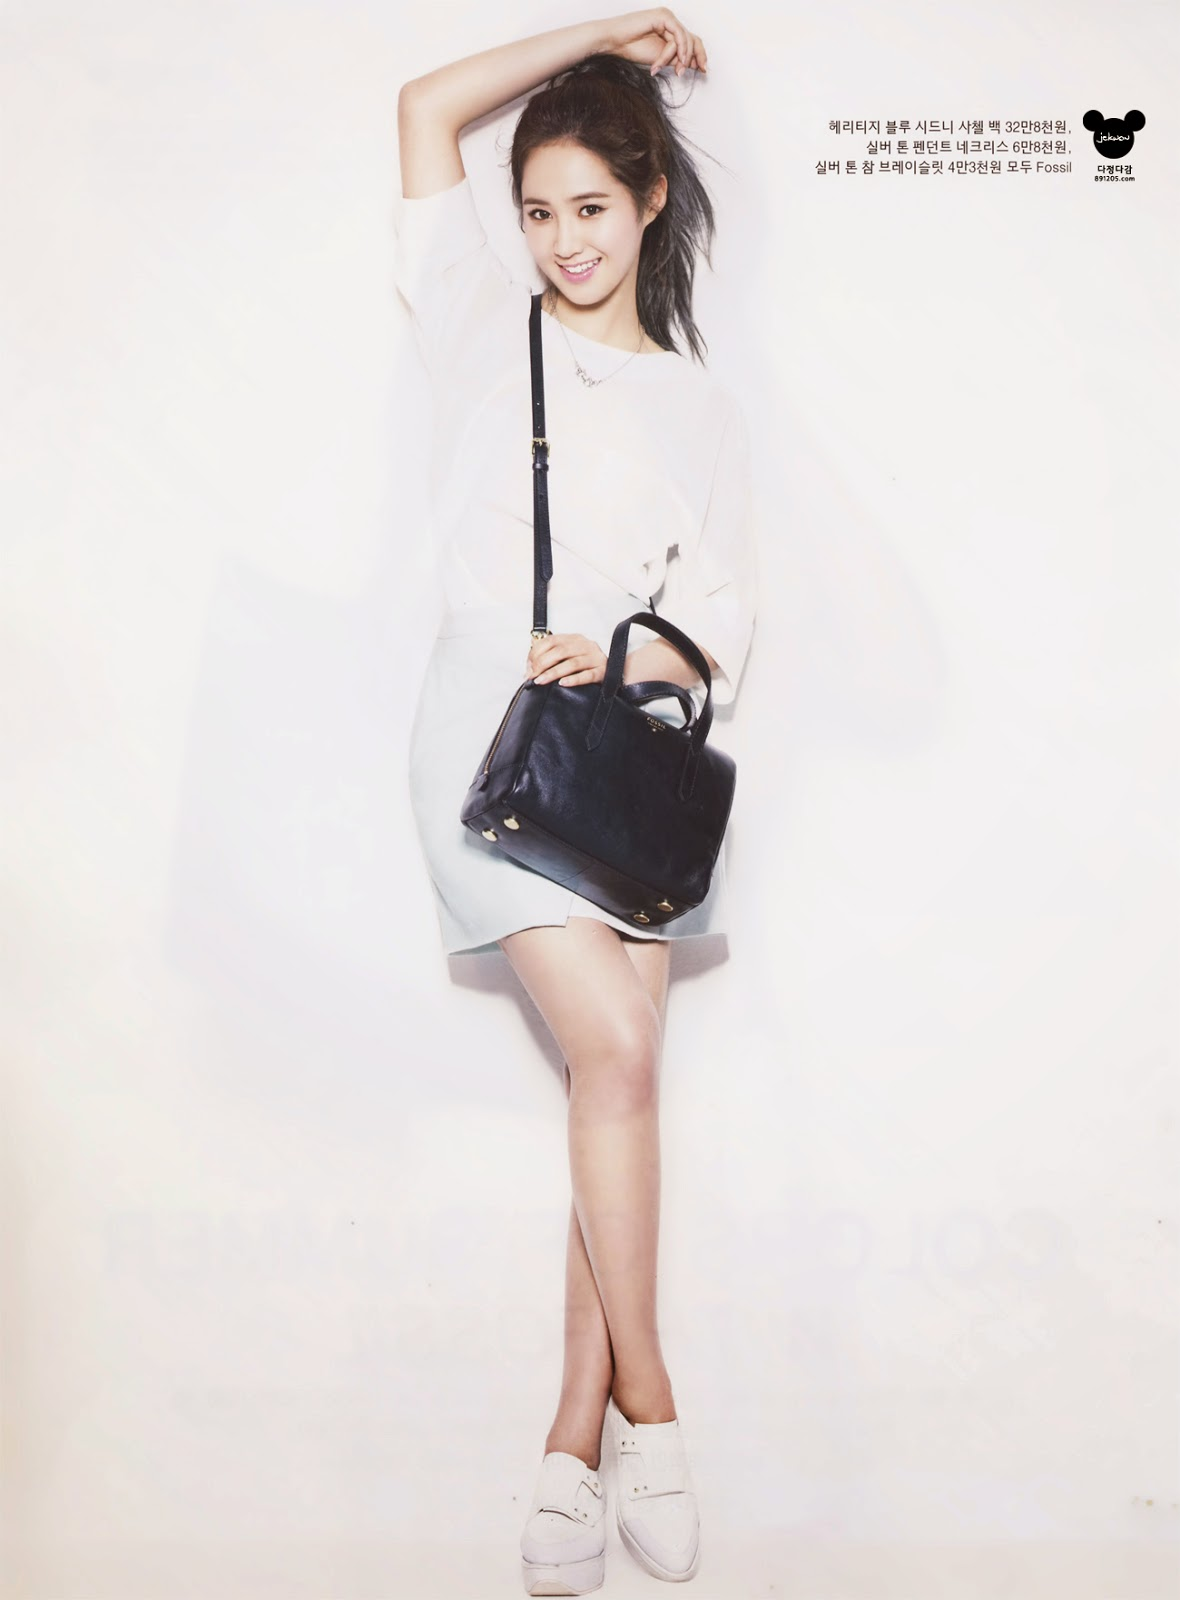 SNSD's Lovely Yuri For InStyle Magazine's May Issue